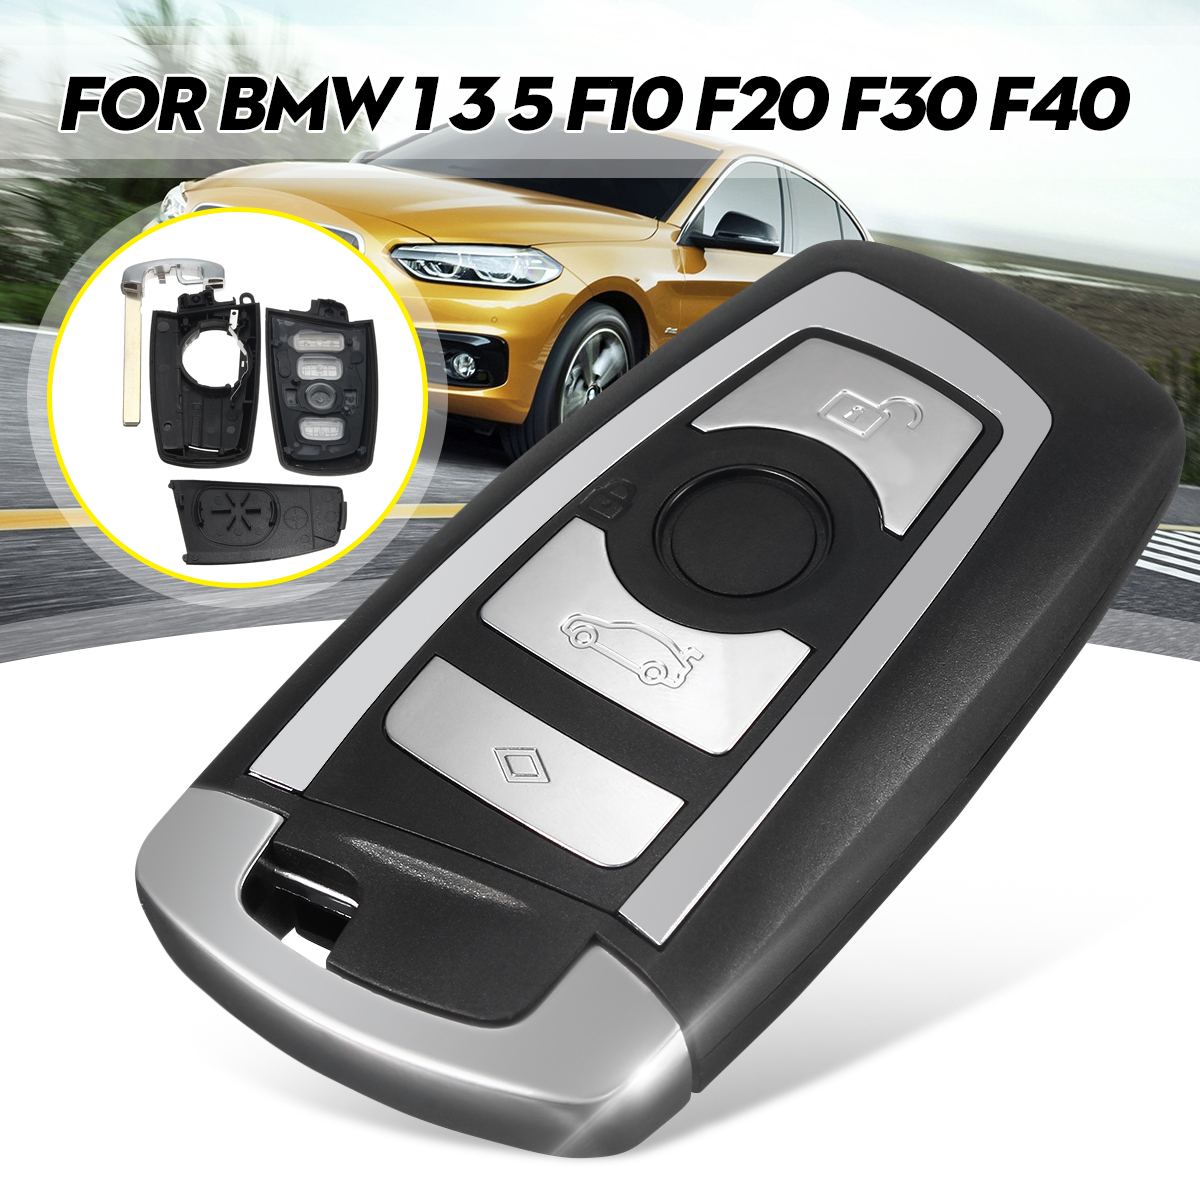 bmw f40 - 4 Botton Uncut Blade Fob Remote Key Shell Case F10 F20 F30 F40 Series For BMW 1 3 5